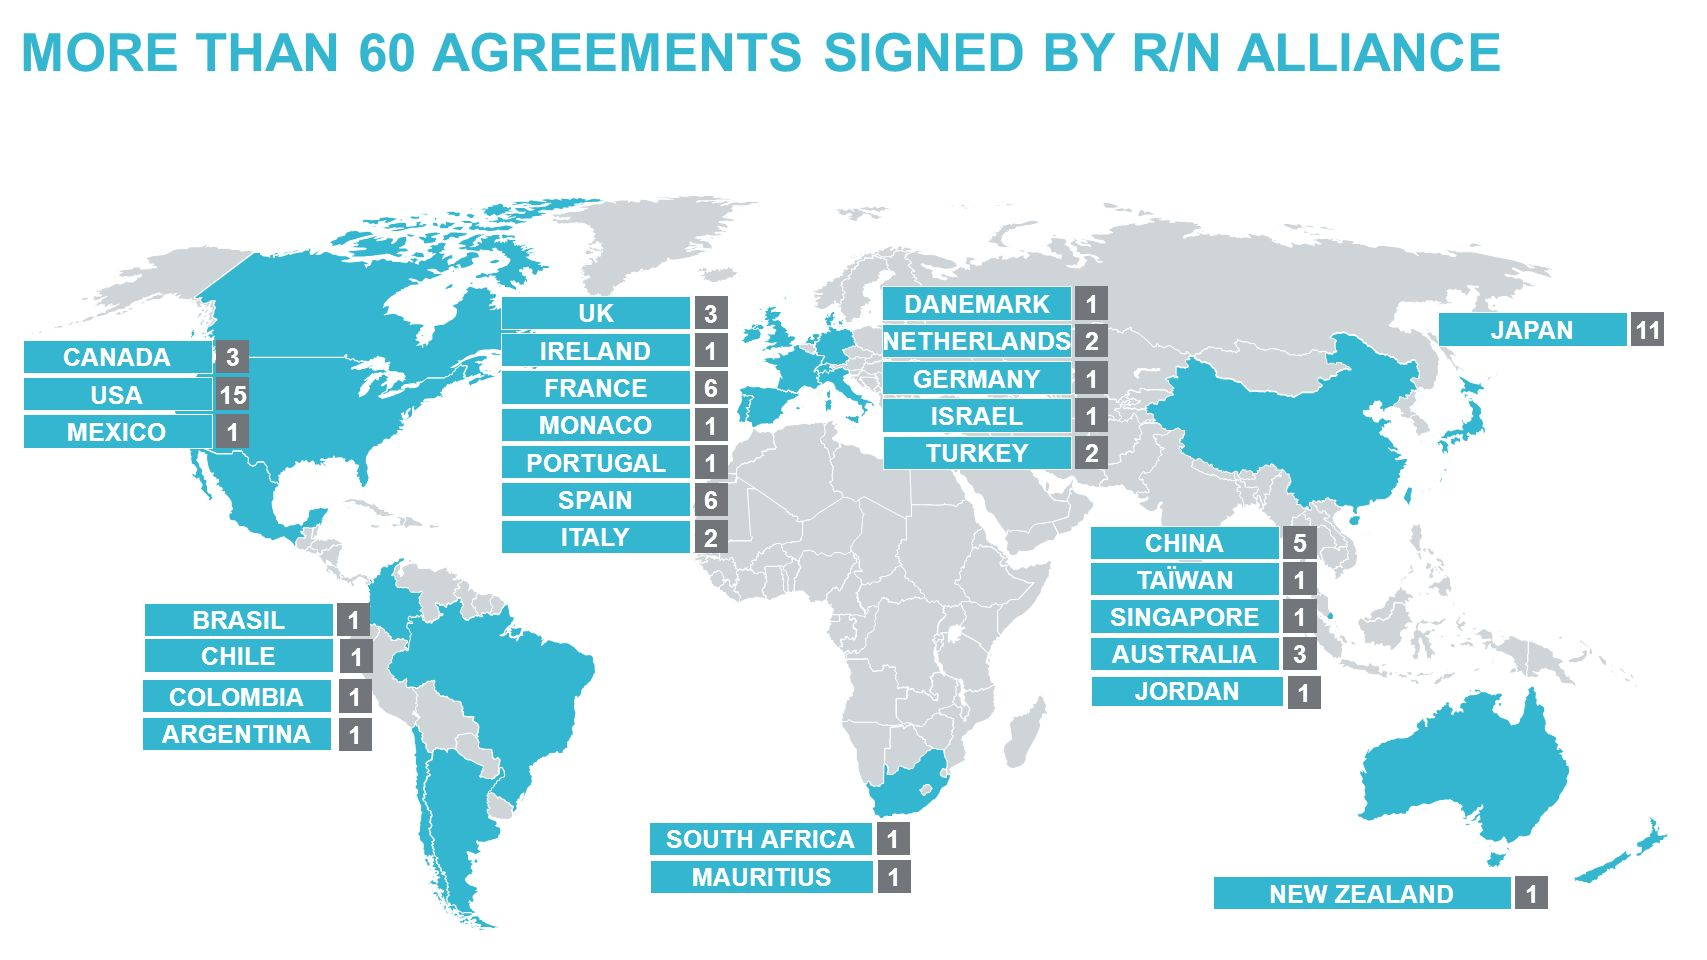 UK IRELAND FRANCE MONACO PORTUGAL SPAIN CANADA USA MEXICO NEW ZEALAND JAPAN 3 15 1 3 1 6 1 1 6 DANEMARK NETHERLANDS GERMANY ISRAEL 1 2 1 1 1 11 BRASIL 1 ITALY 2 MORE THAN 60 AGREEMENTS SIGNED BY R/N ALLIANCE CHINA SINGAPORE AUSTRALIA 5 1 3 TAÏWAN 1 TURKEY 2 SOUTH AFRICA 1 MAURITIUS 1 JORDAN 1 ARGENTINA COLOMBIA CHILE 1 1 1